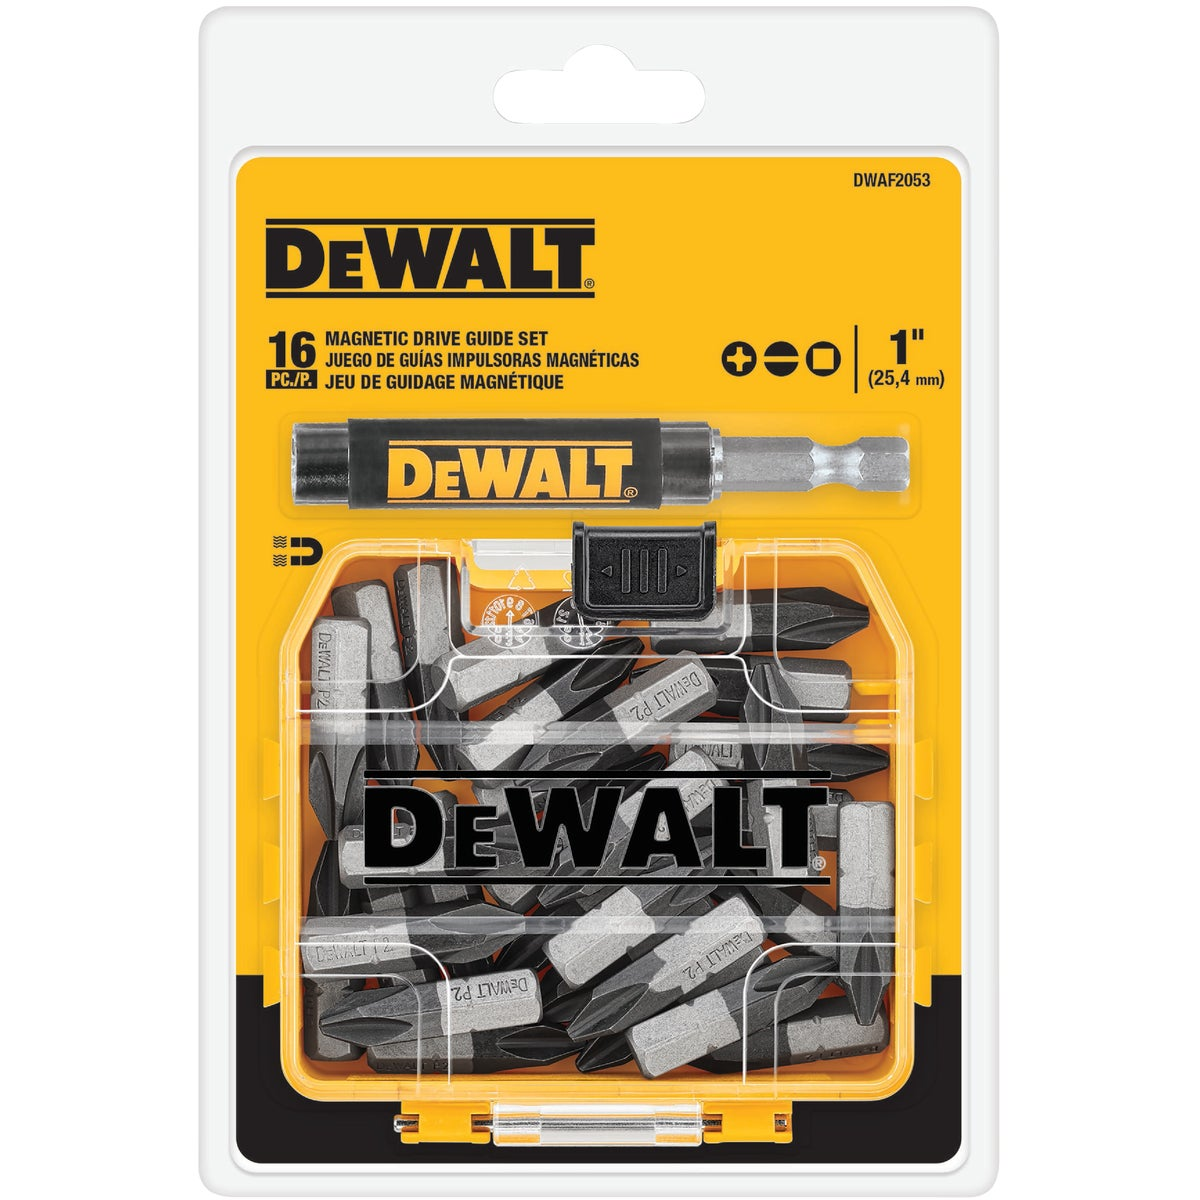 "6"" MAG DRIVE GUIDE SET - DW2053 by DeWalt"